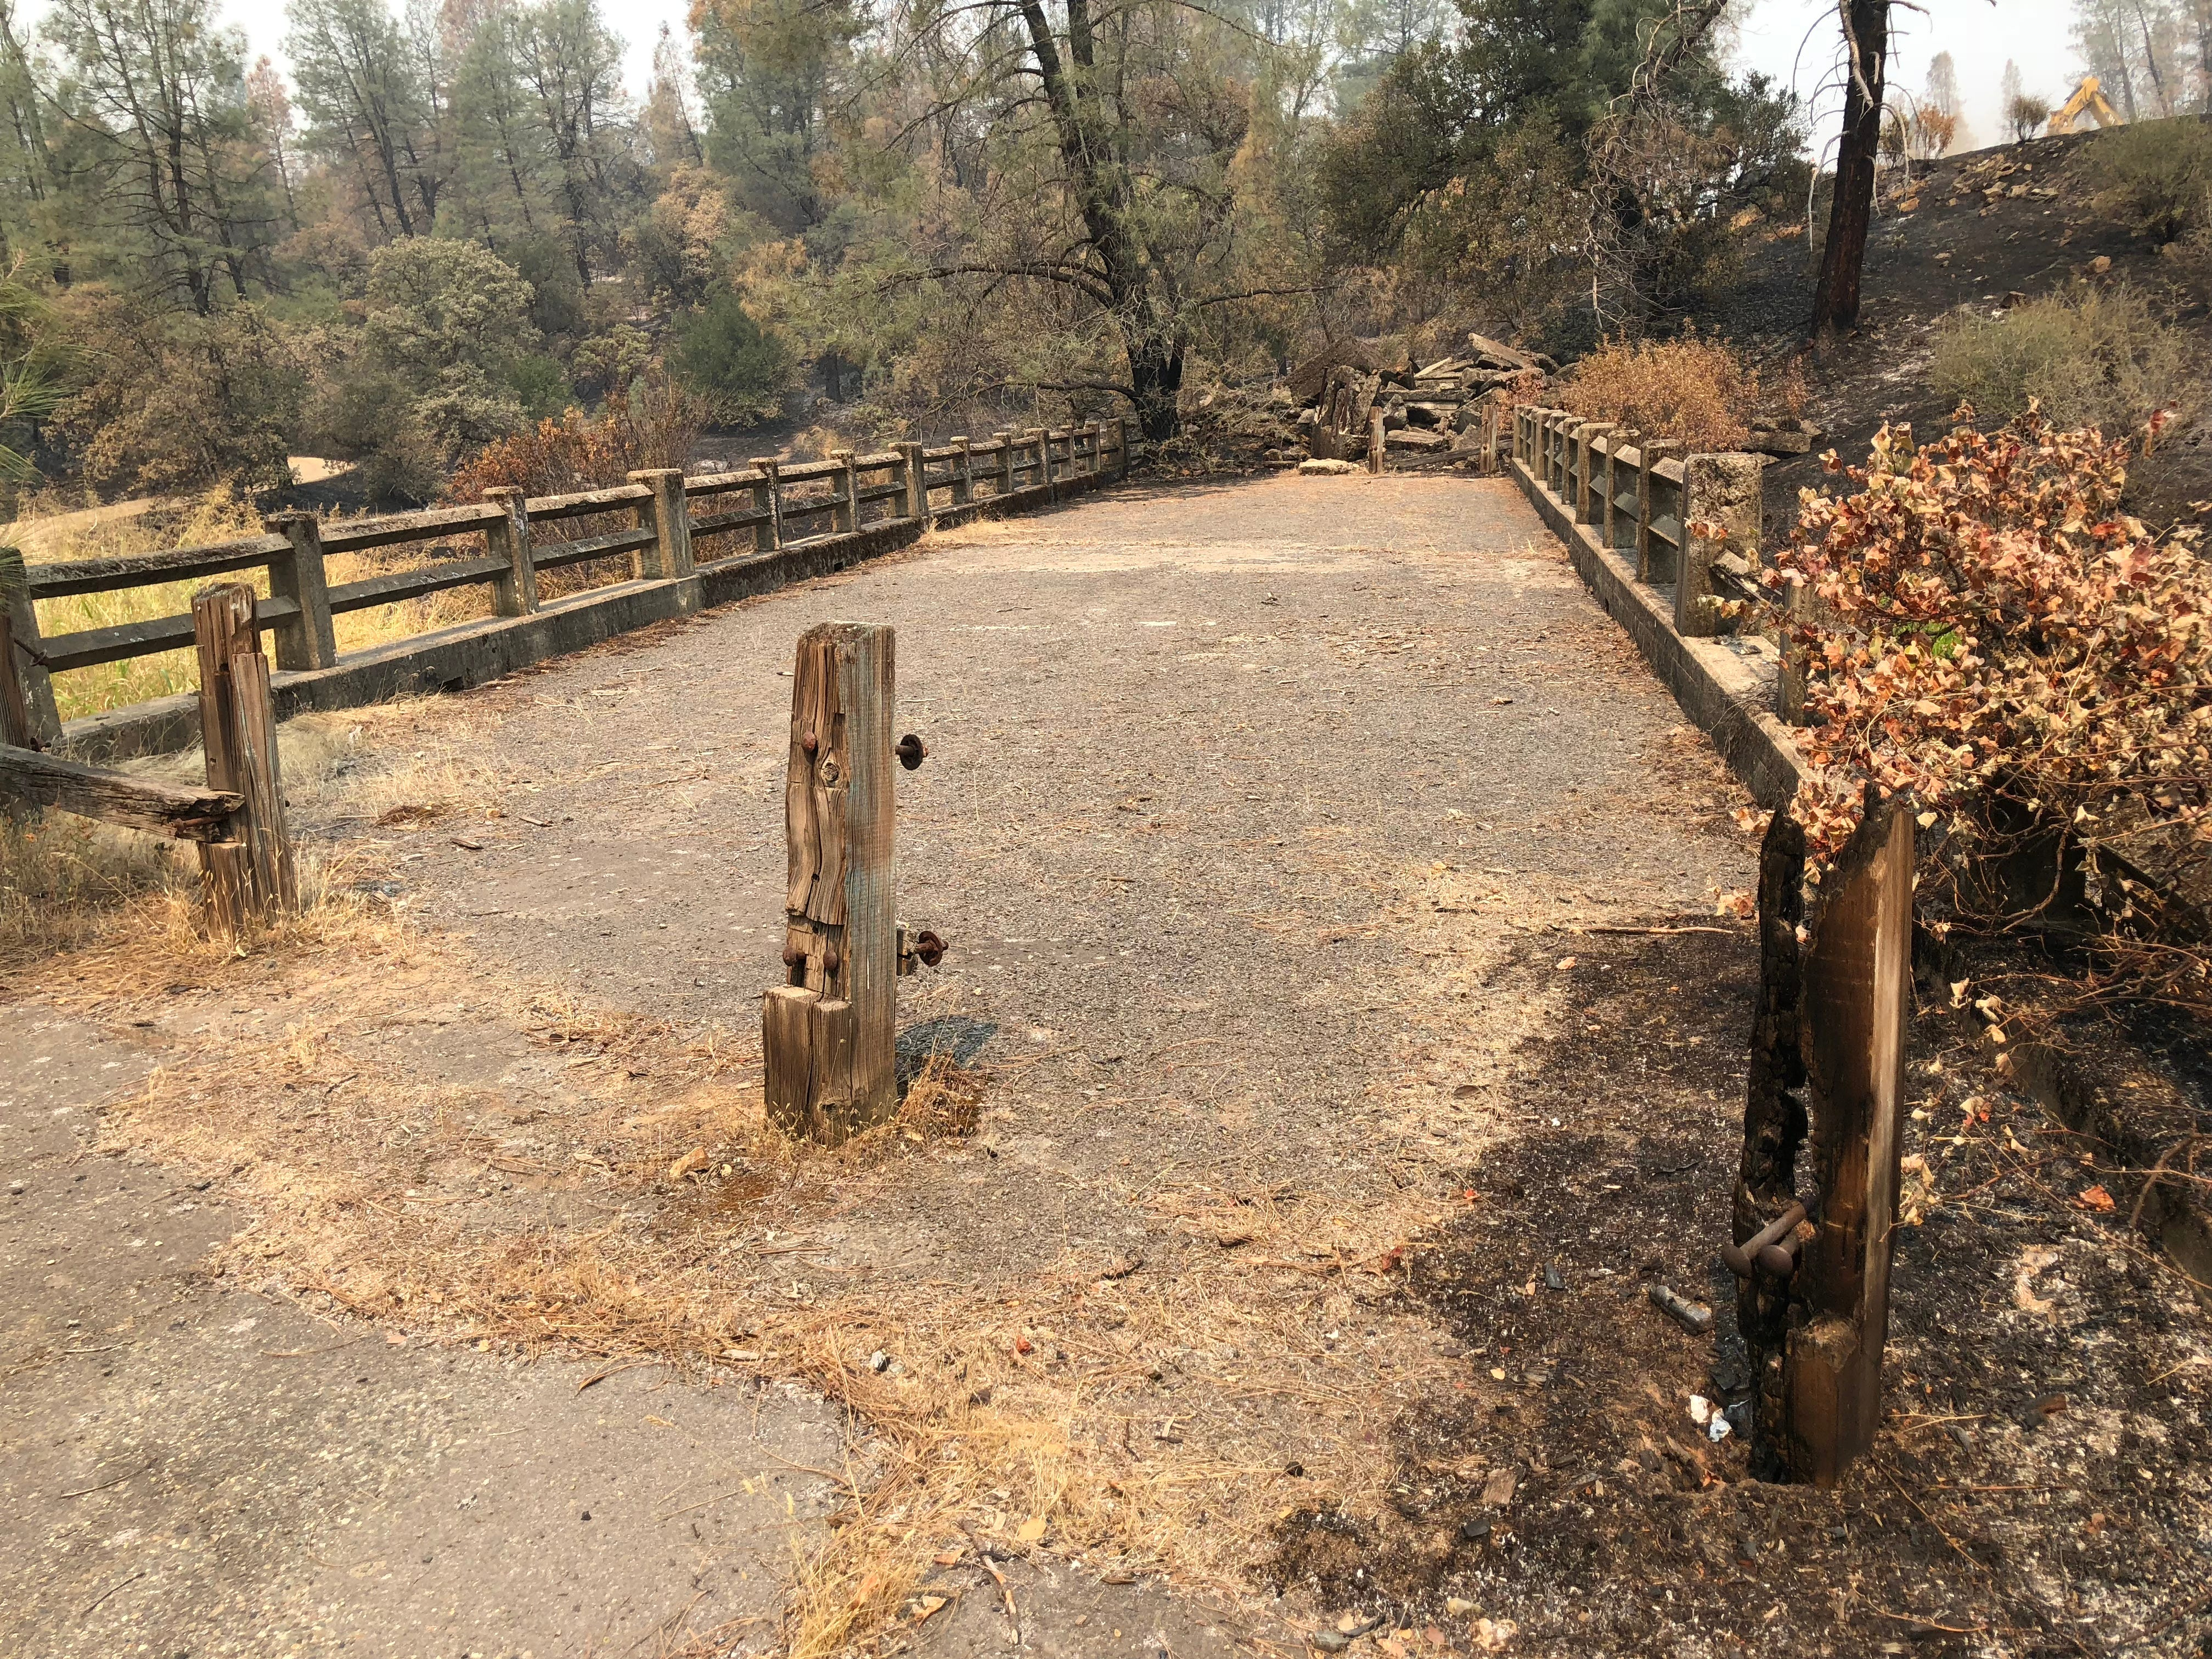 The Middle Creek Connector Trailhead parking area off Highway 299 is closed to the public as officials work alongside the road on Carr Fire recovery efforts. The area is fairly burned with the far end of this bridge having collapsed. Fallen trees partially obscure the path to the parking area.